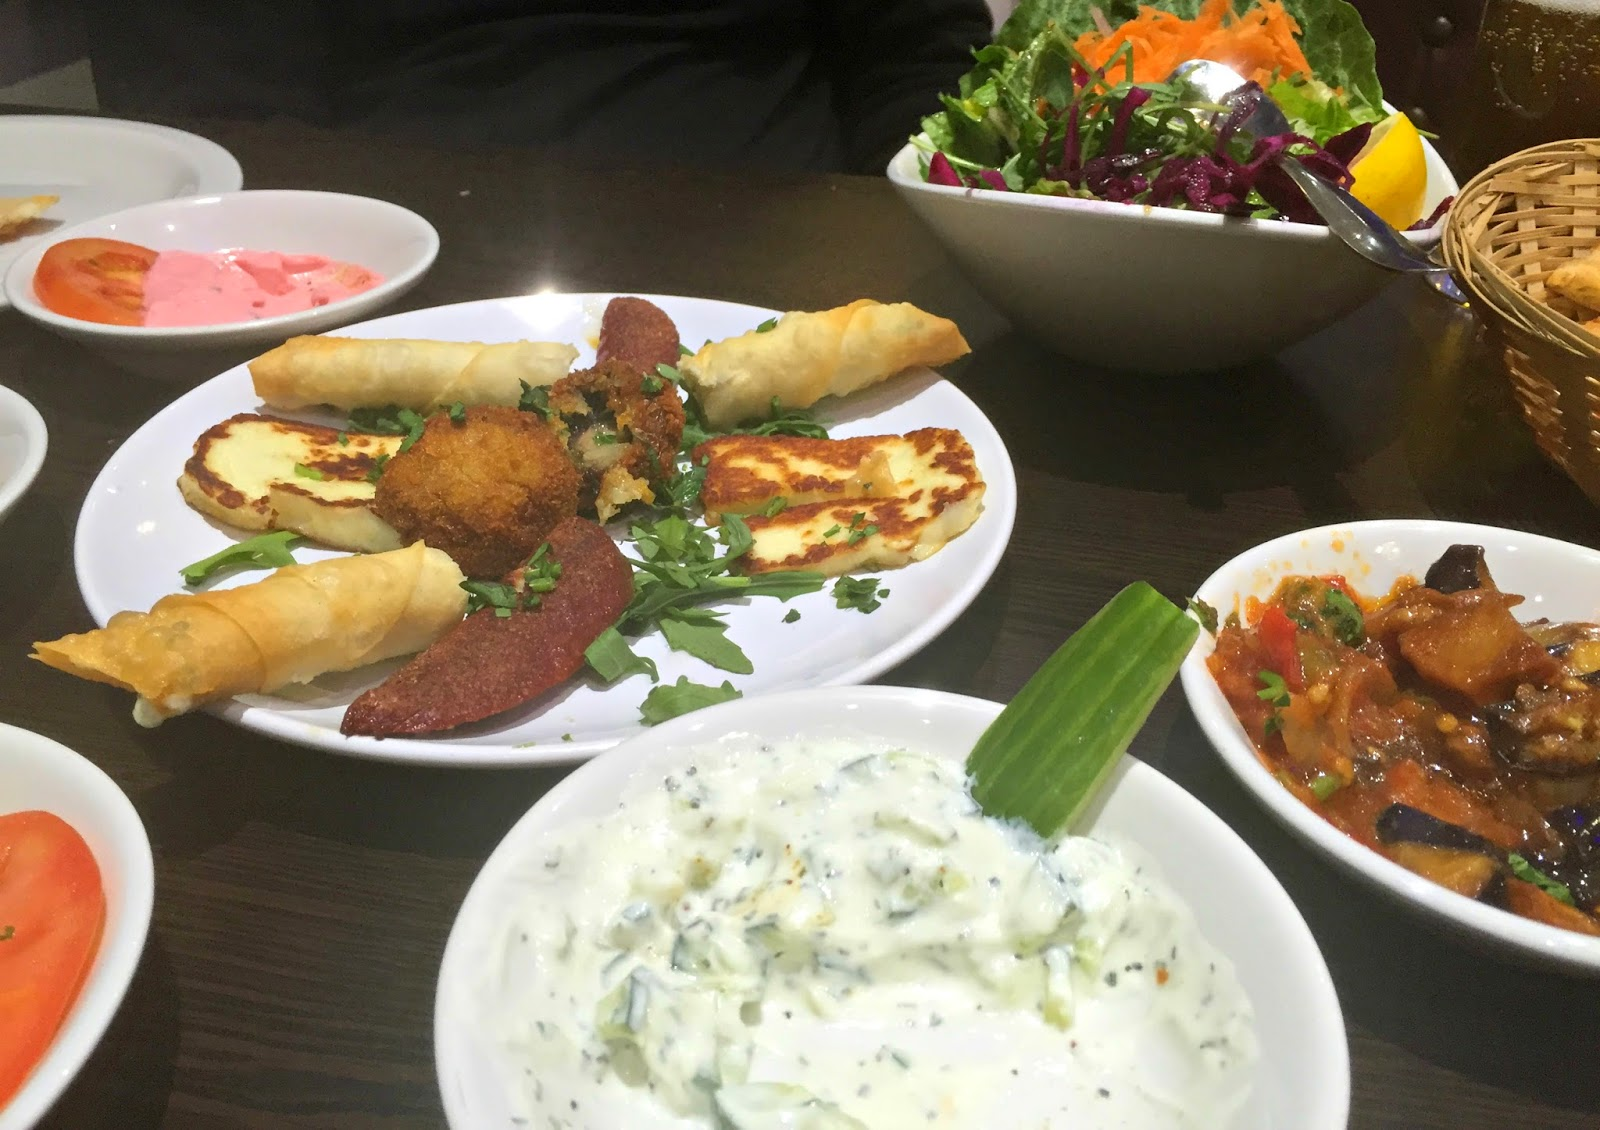 Selection of turkish tapas dishes